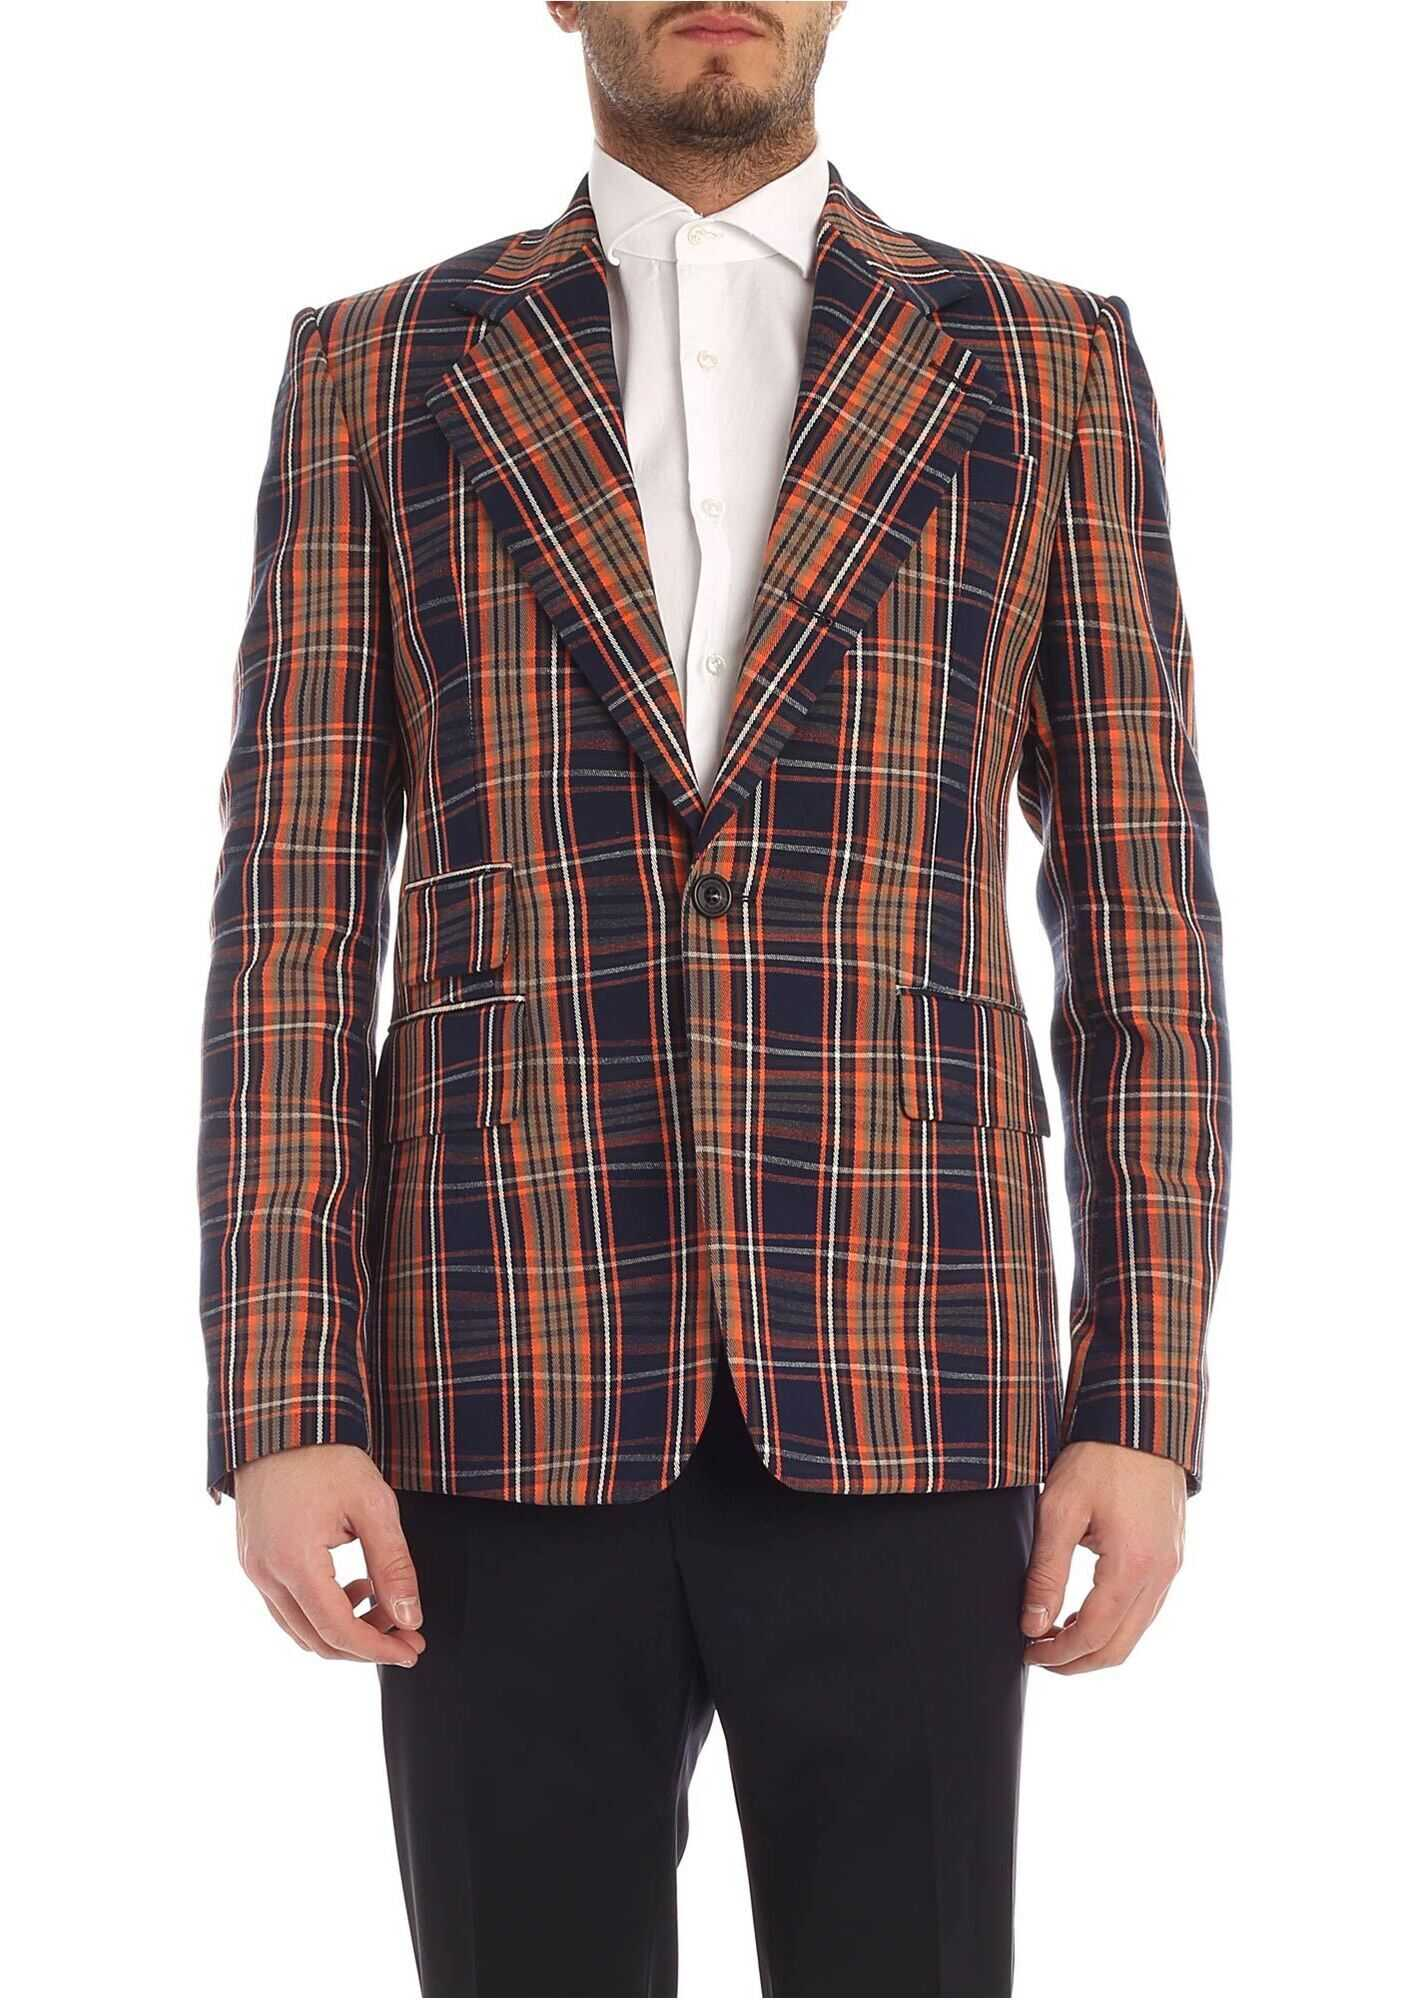 Vivienne Westwood Single Breasted Checked Jacket In Blue And Orange Blue imagine